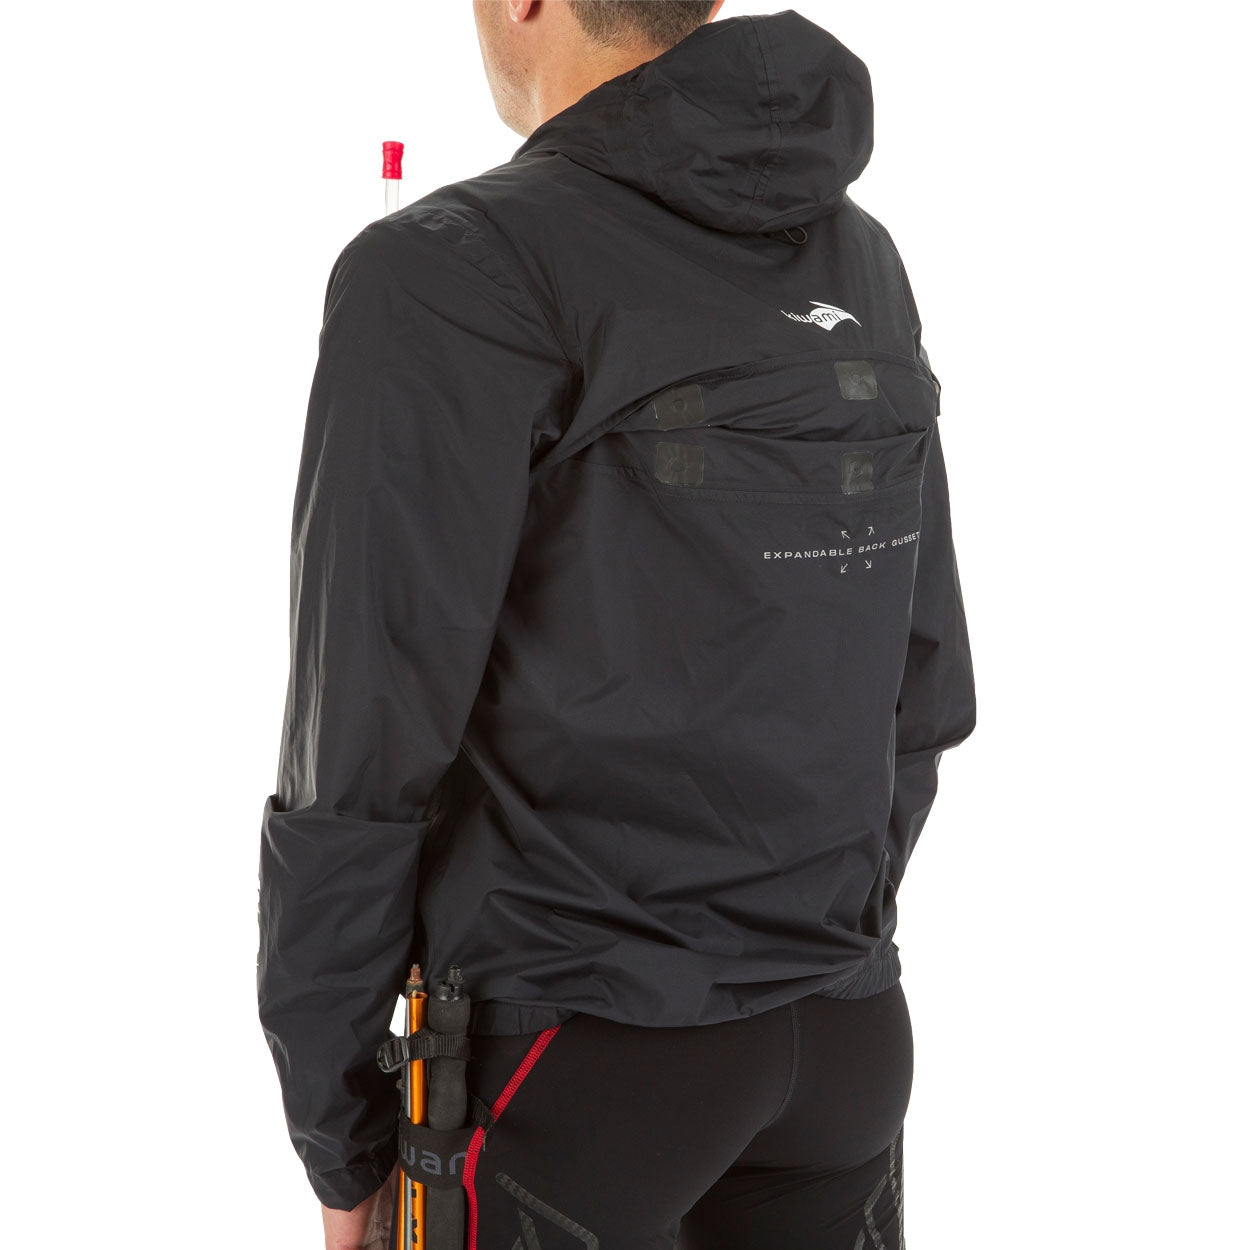 Expand 70/20 trail running jacket